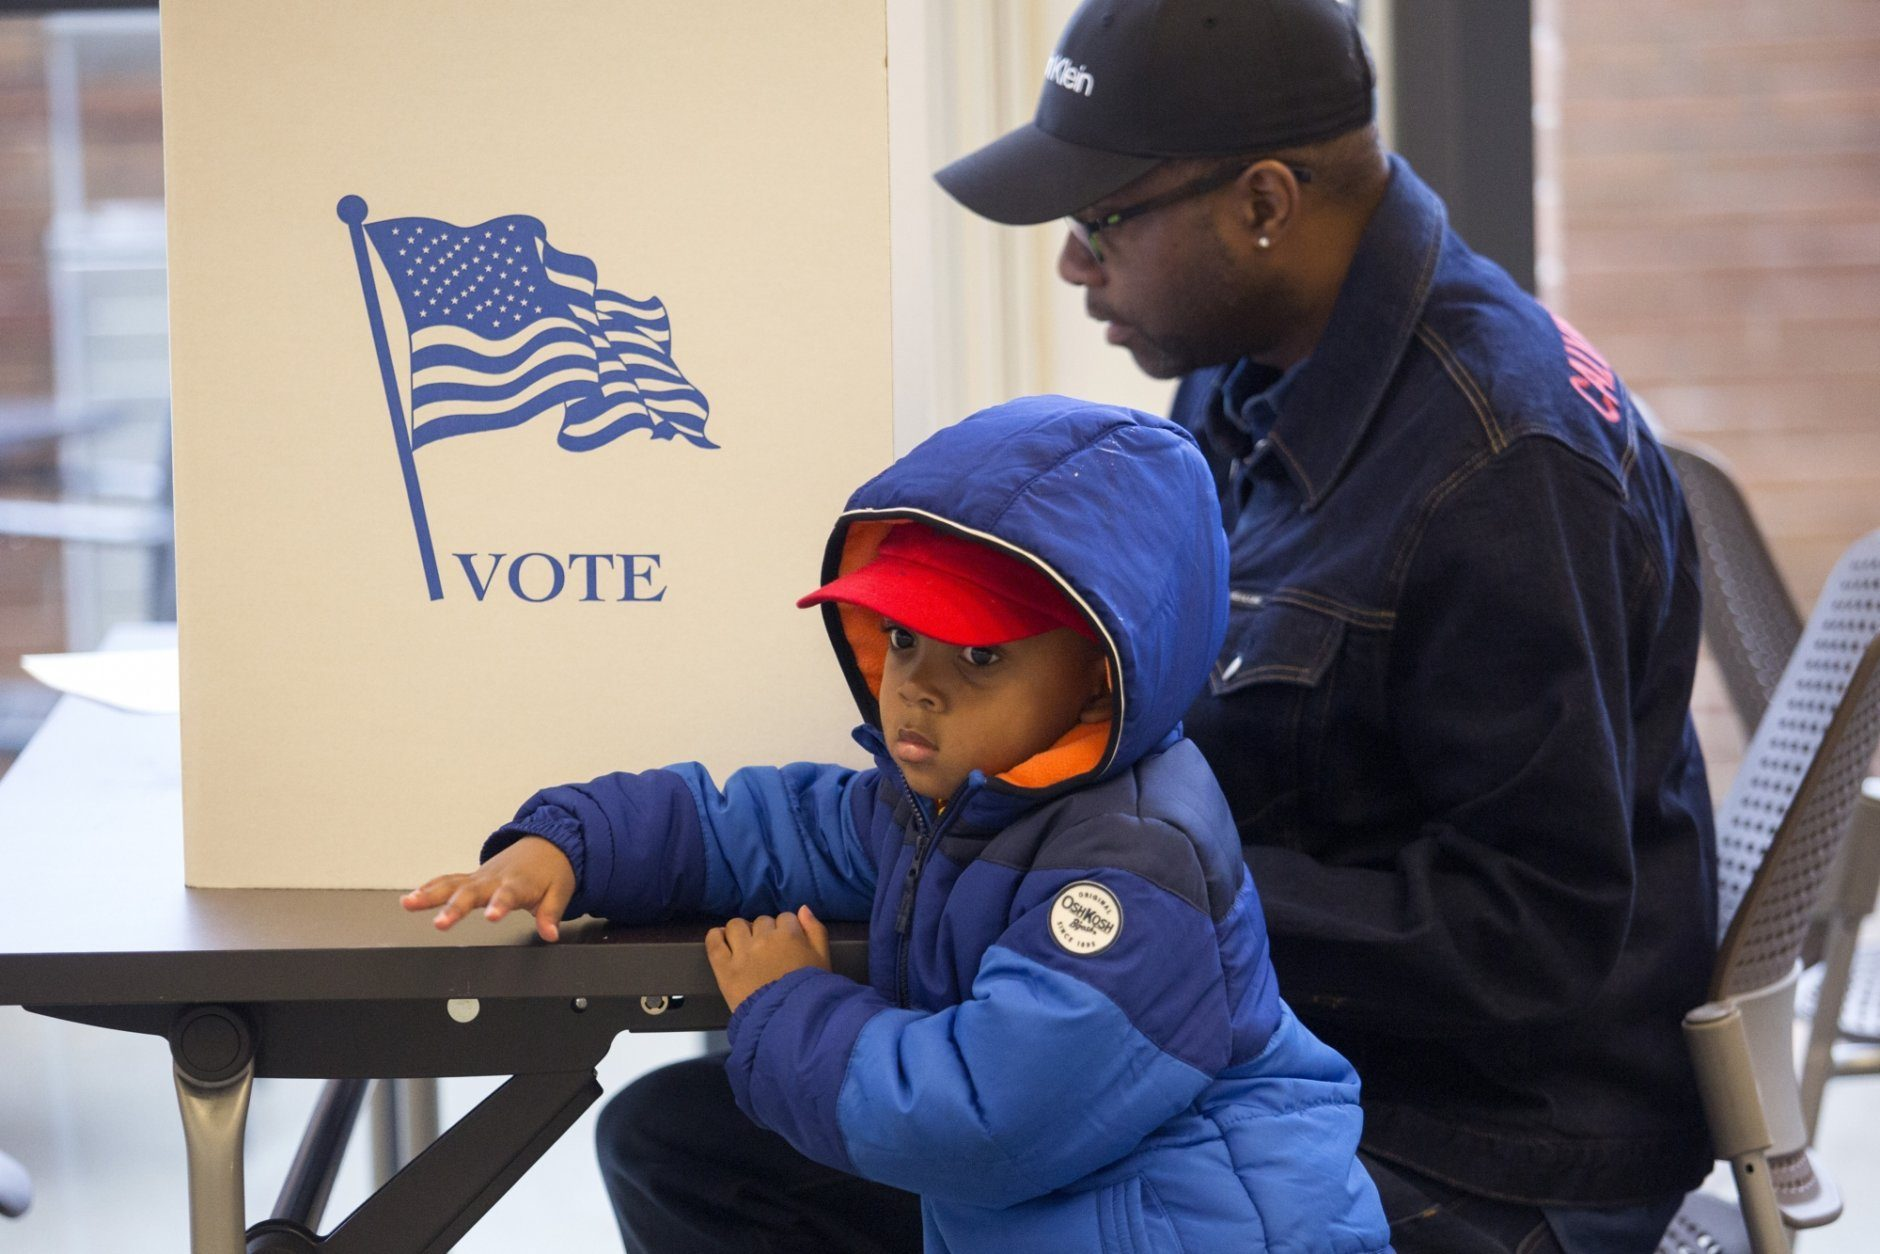 Asher Artis, 3, waits for his grandfather, Keith Smith, to finish filling out his ballot at The Kroc Center Hampton Roads, a polling location in Norfolk, Va., on Tuesday, Nov. 5, 2019.  (Sarah Holm/The Virginian-Pilot via AP)